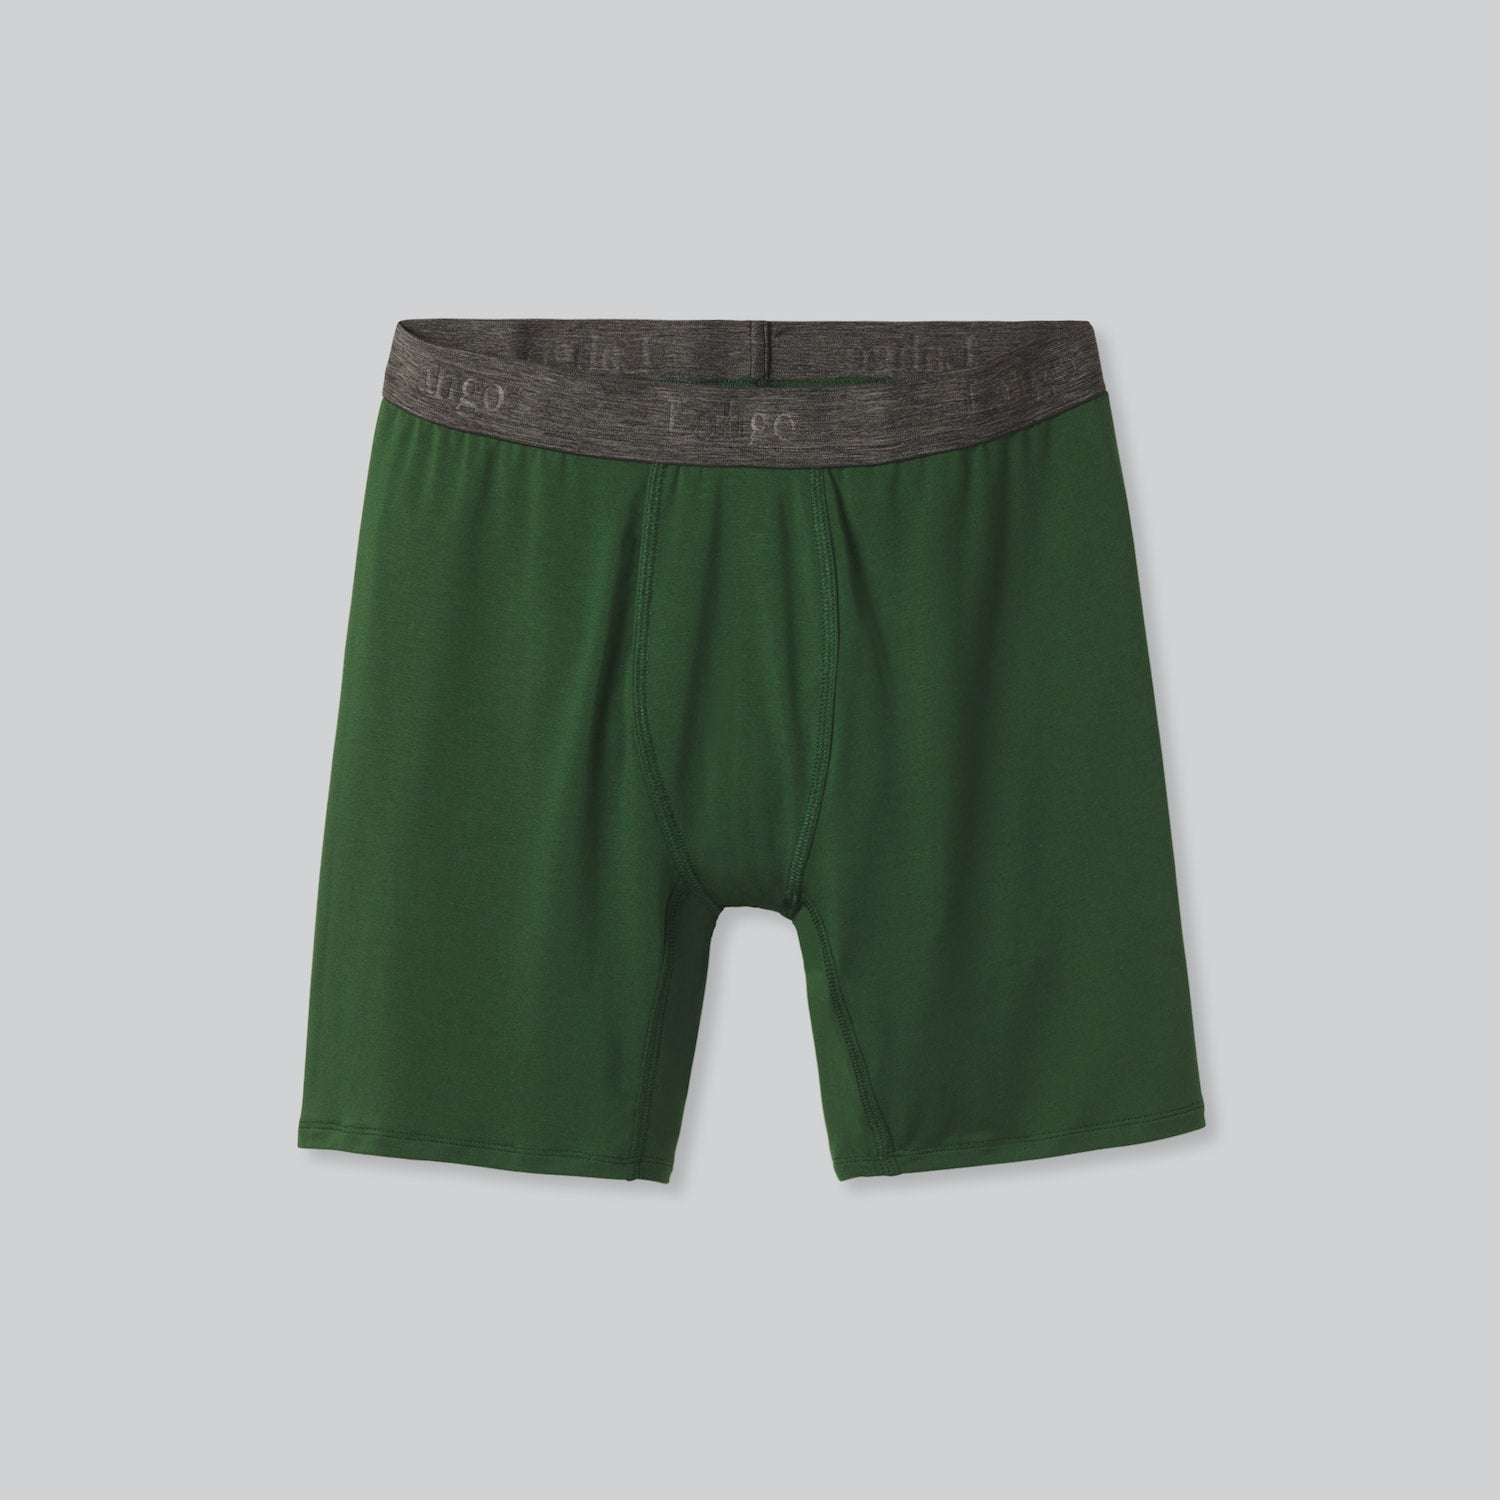 Lahgo Sleepwear Supportive Modal Boxer Brief - #Forest